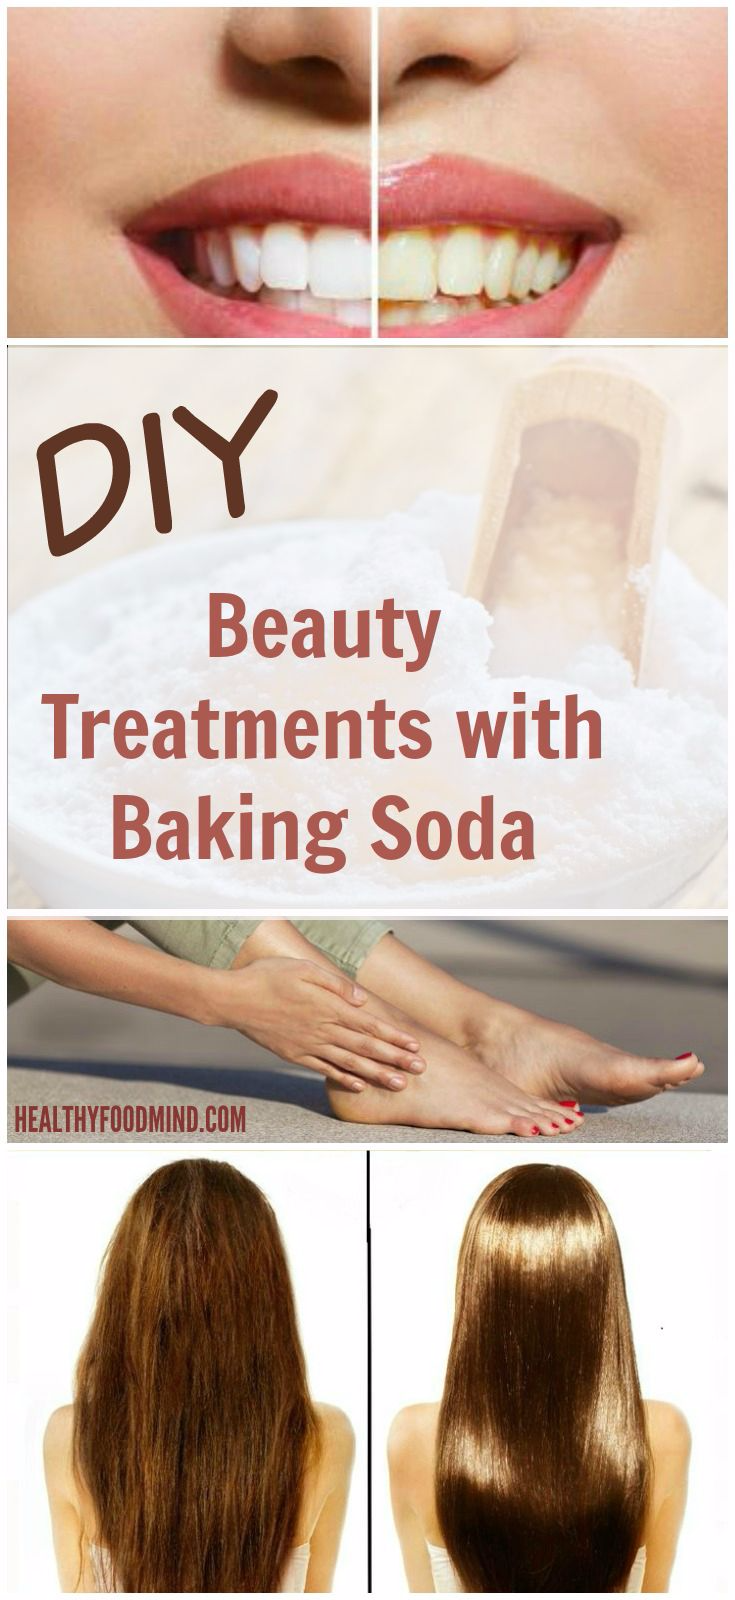 8 Natural and Effective Health and Beauty Tips with Baking Soda